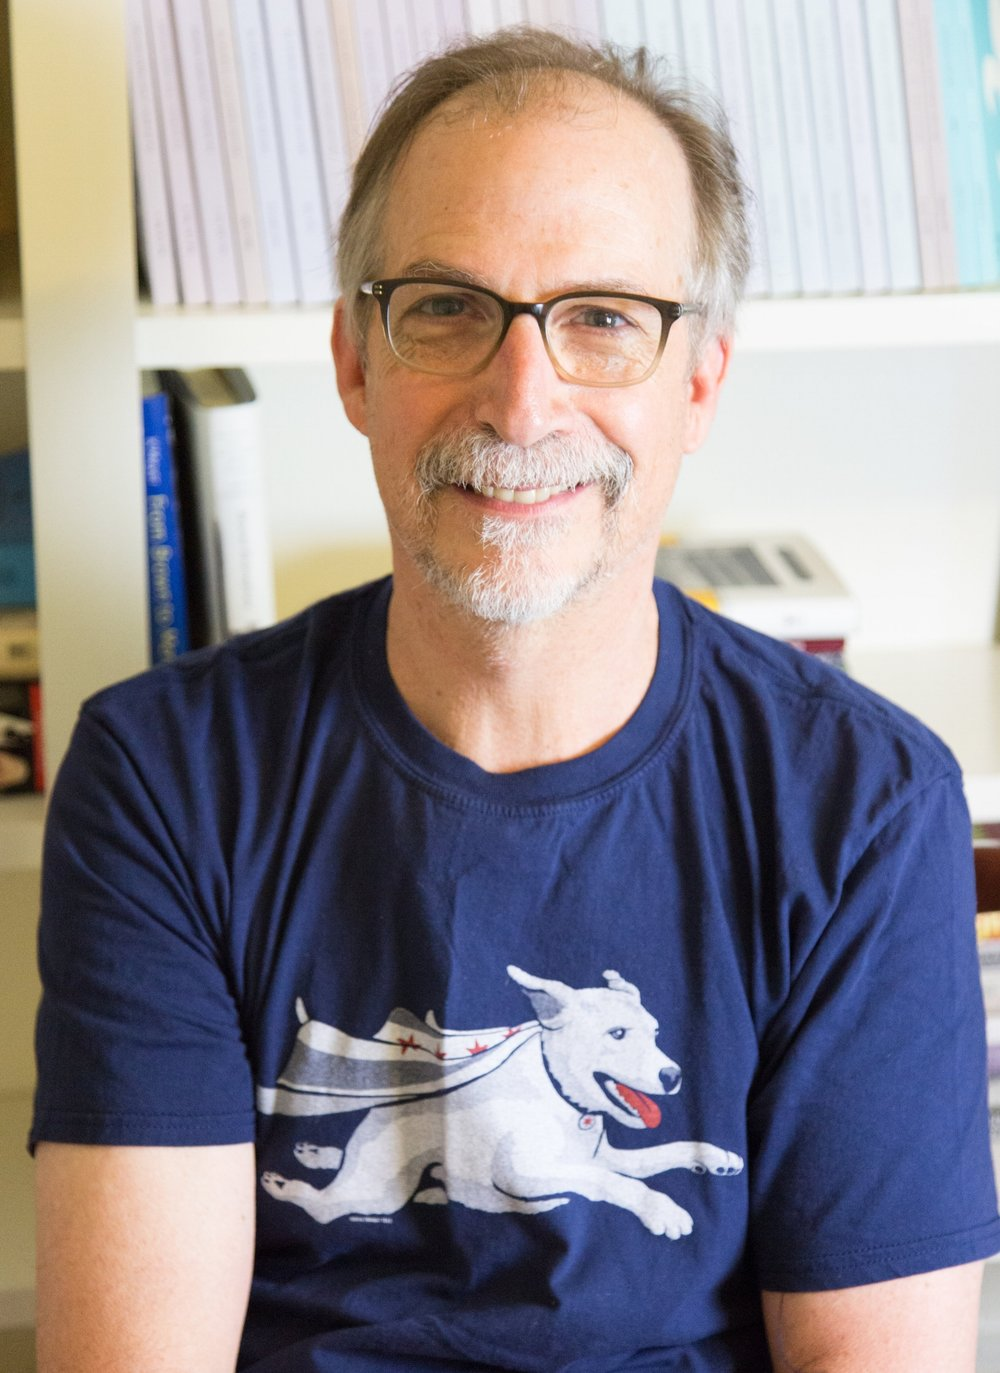 Man with glasses, goatee and blue t-shirt with a dog on it